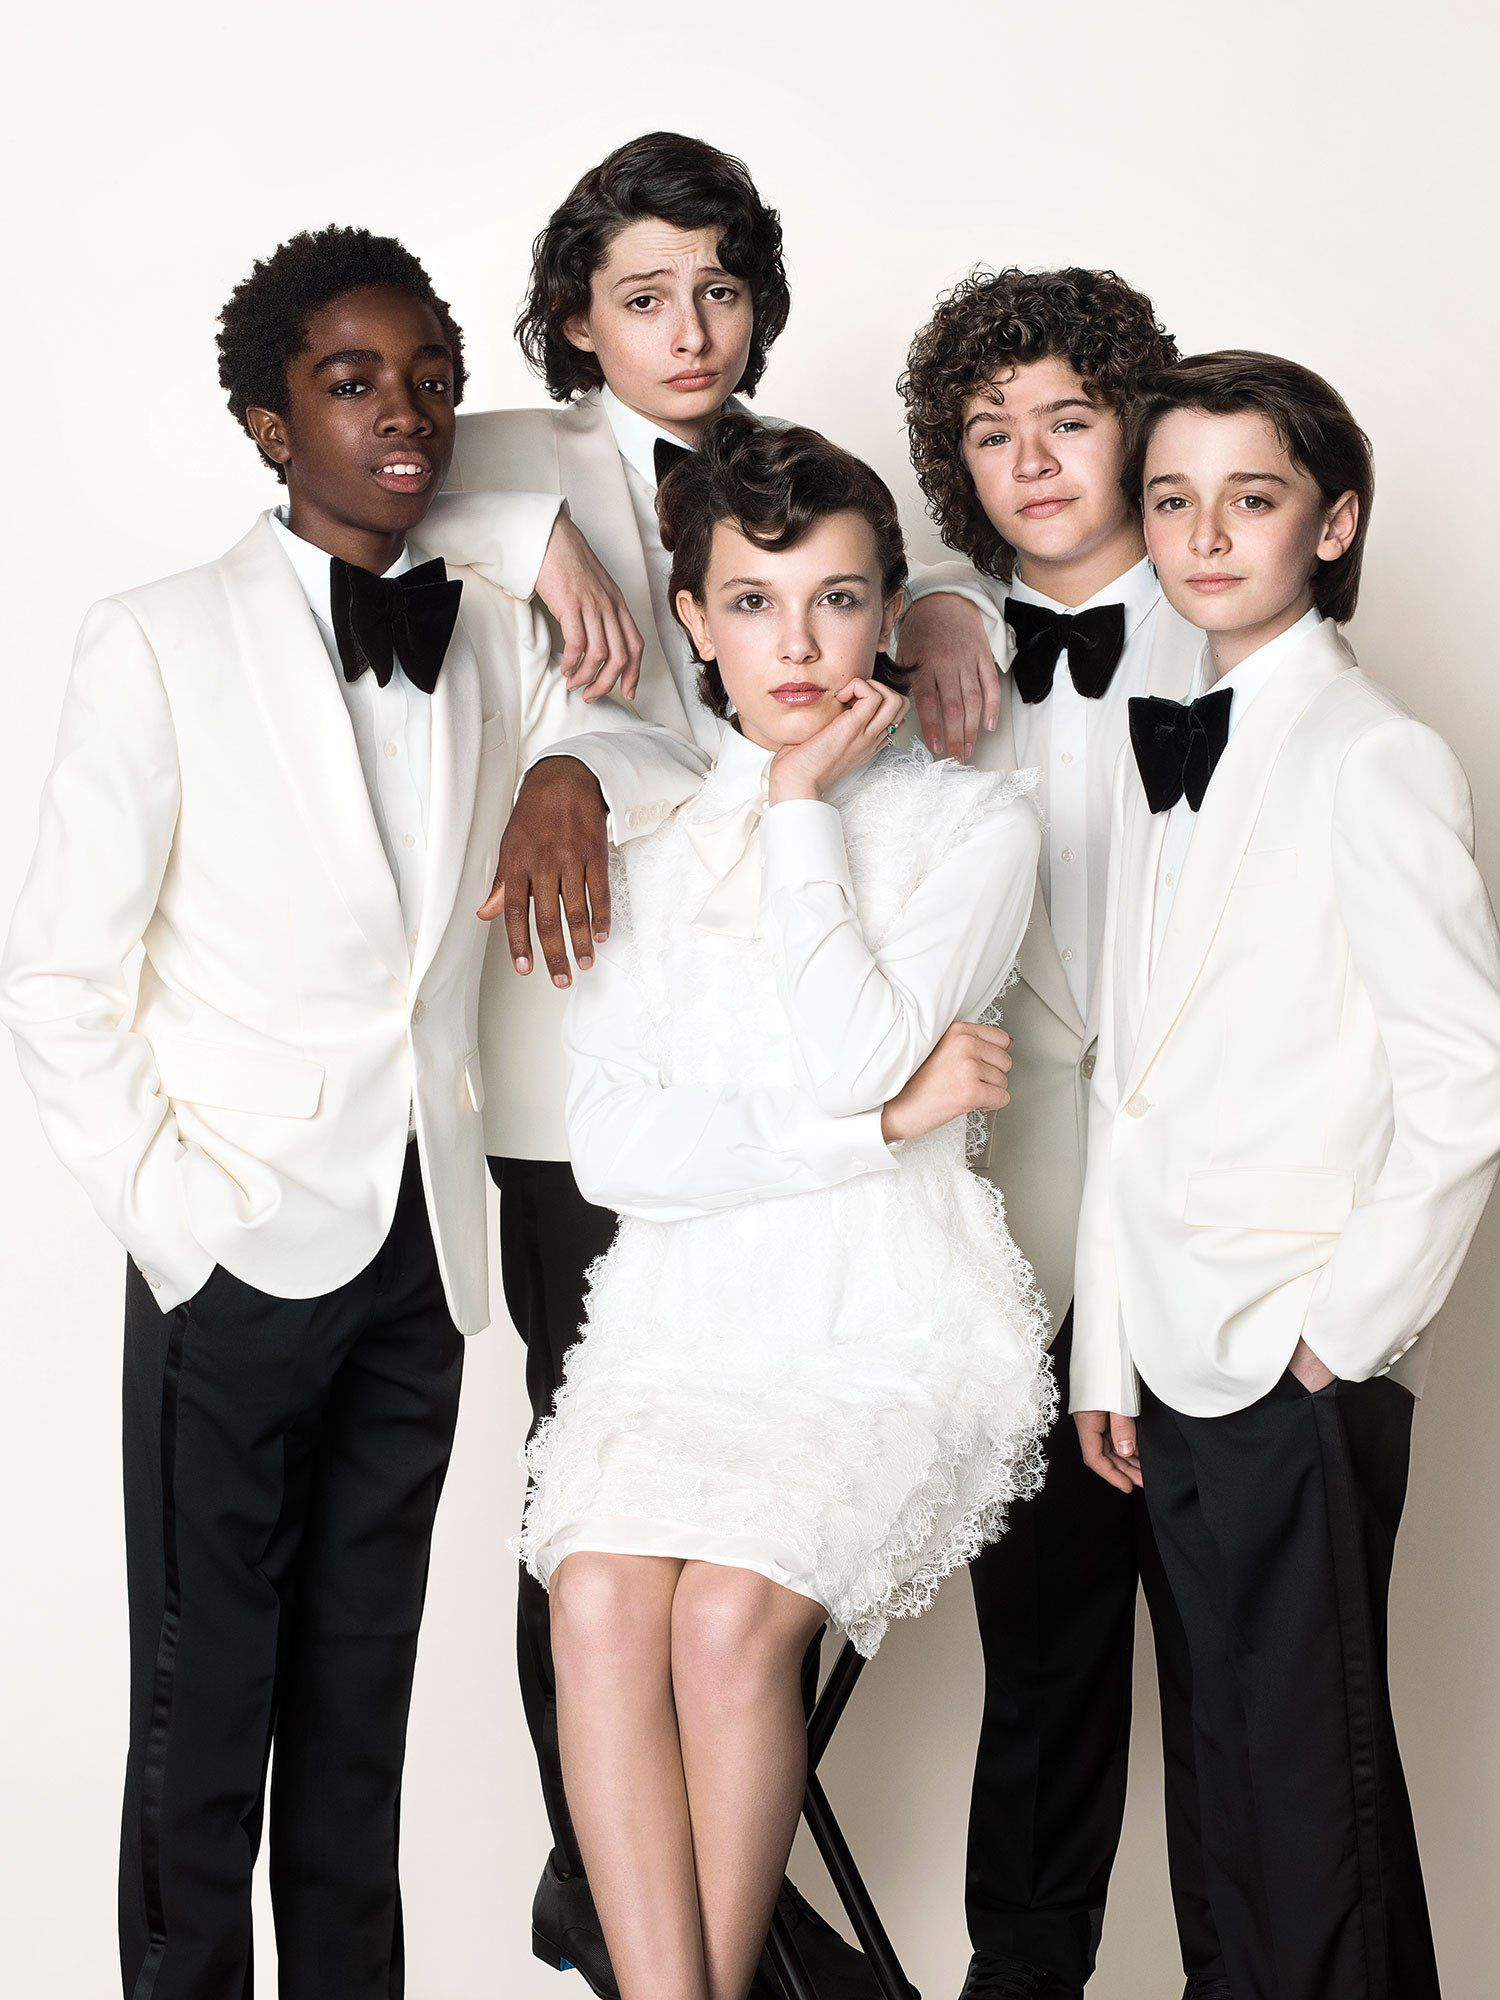 Sworn To Secrecy The Stranger Things Kids Cant Even Share Their